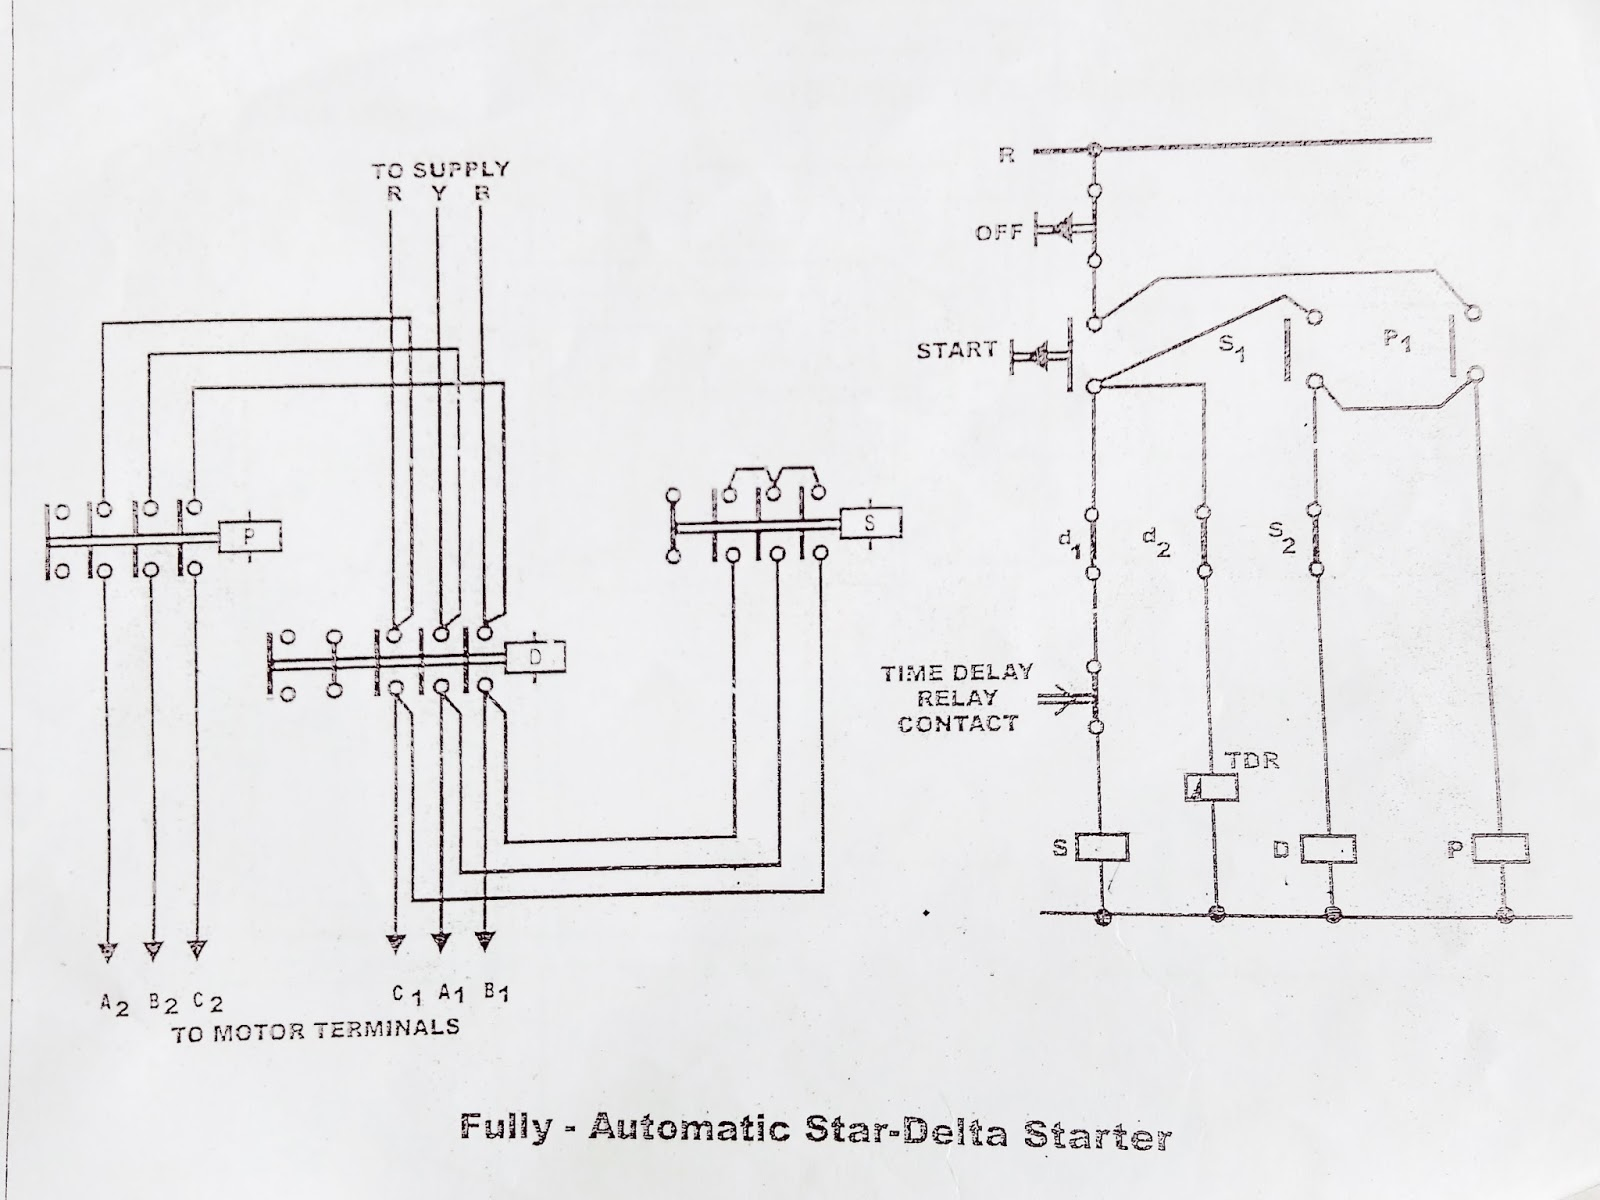 Star%2Bdelta%2Bstarter%2Bcontrol%2Bdiagram%2Bworking%2Bprinciple%2Bexplanation star delta starter control diagram working principle electrical star delta starter wiring diagram at webbmarketing.co